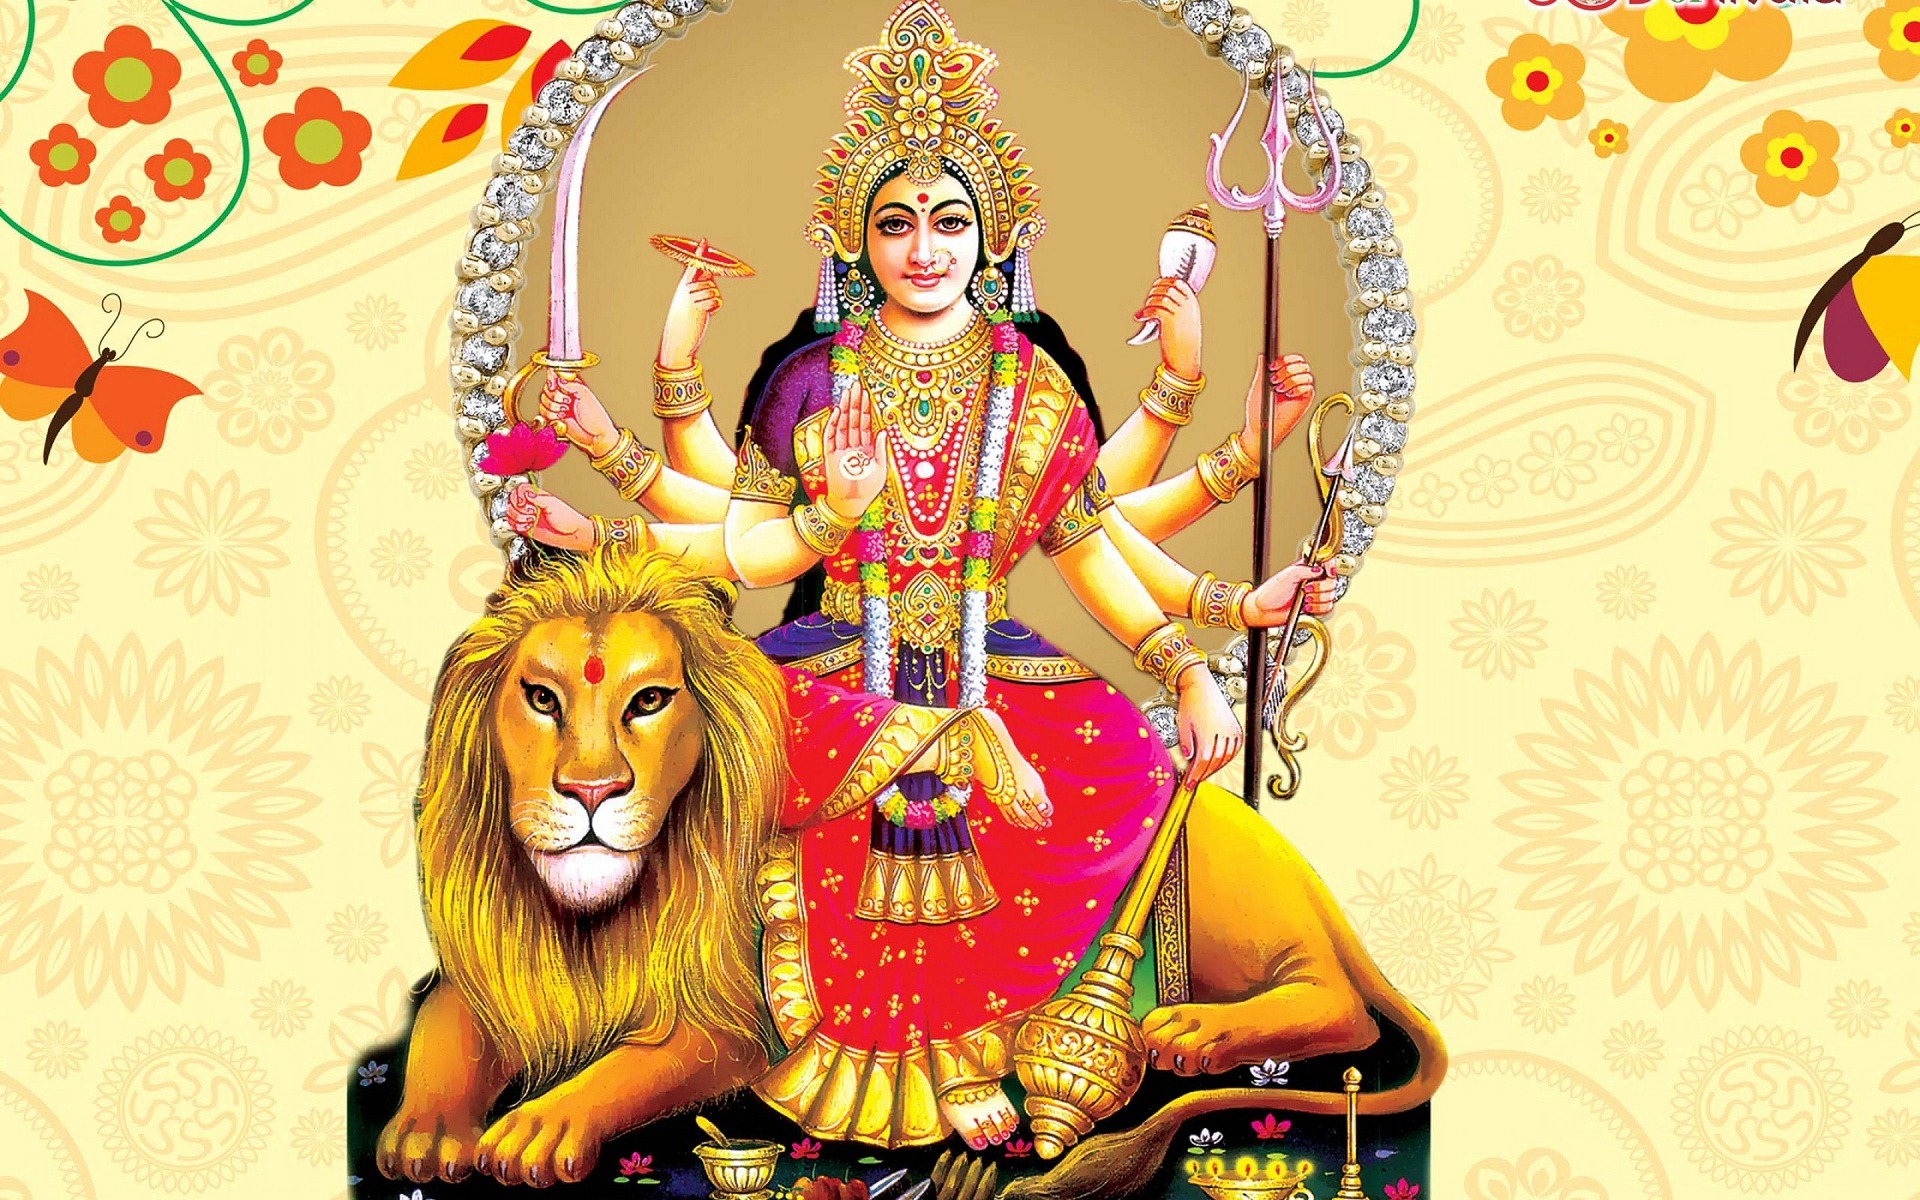 Wallpaper download mata rani - Download Maa Durga Image Whatsapp Profile Wallpaper